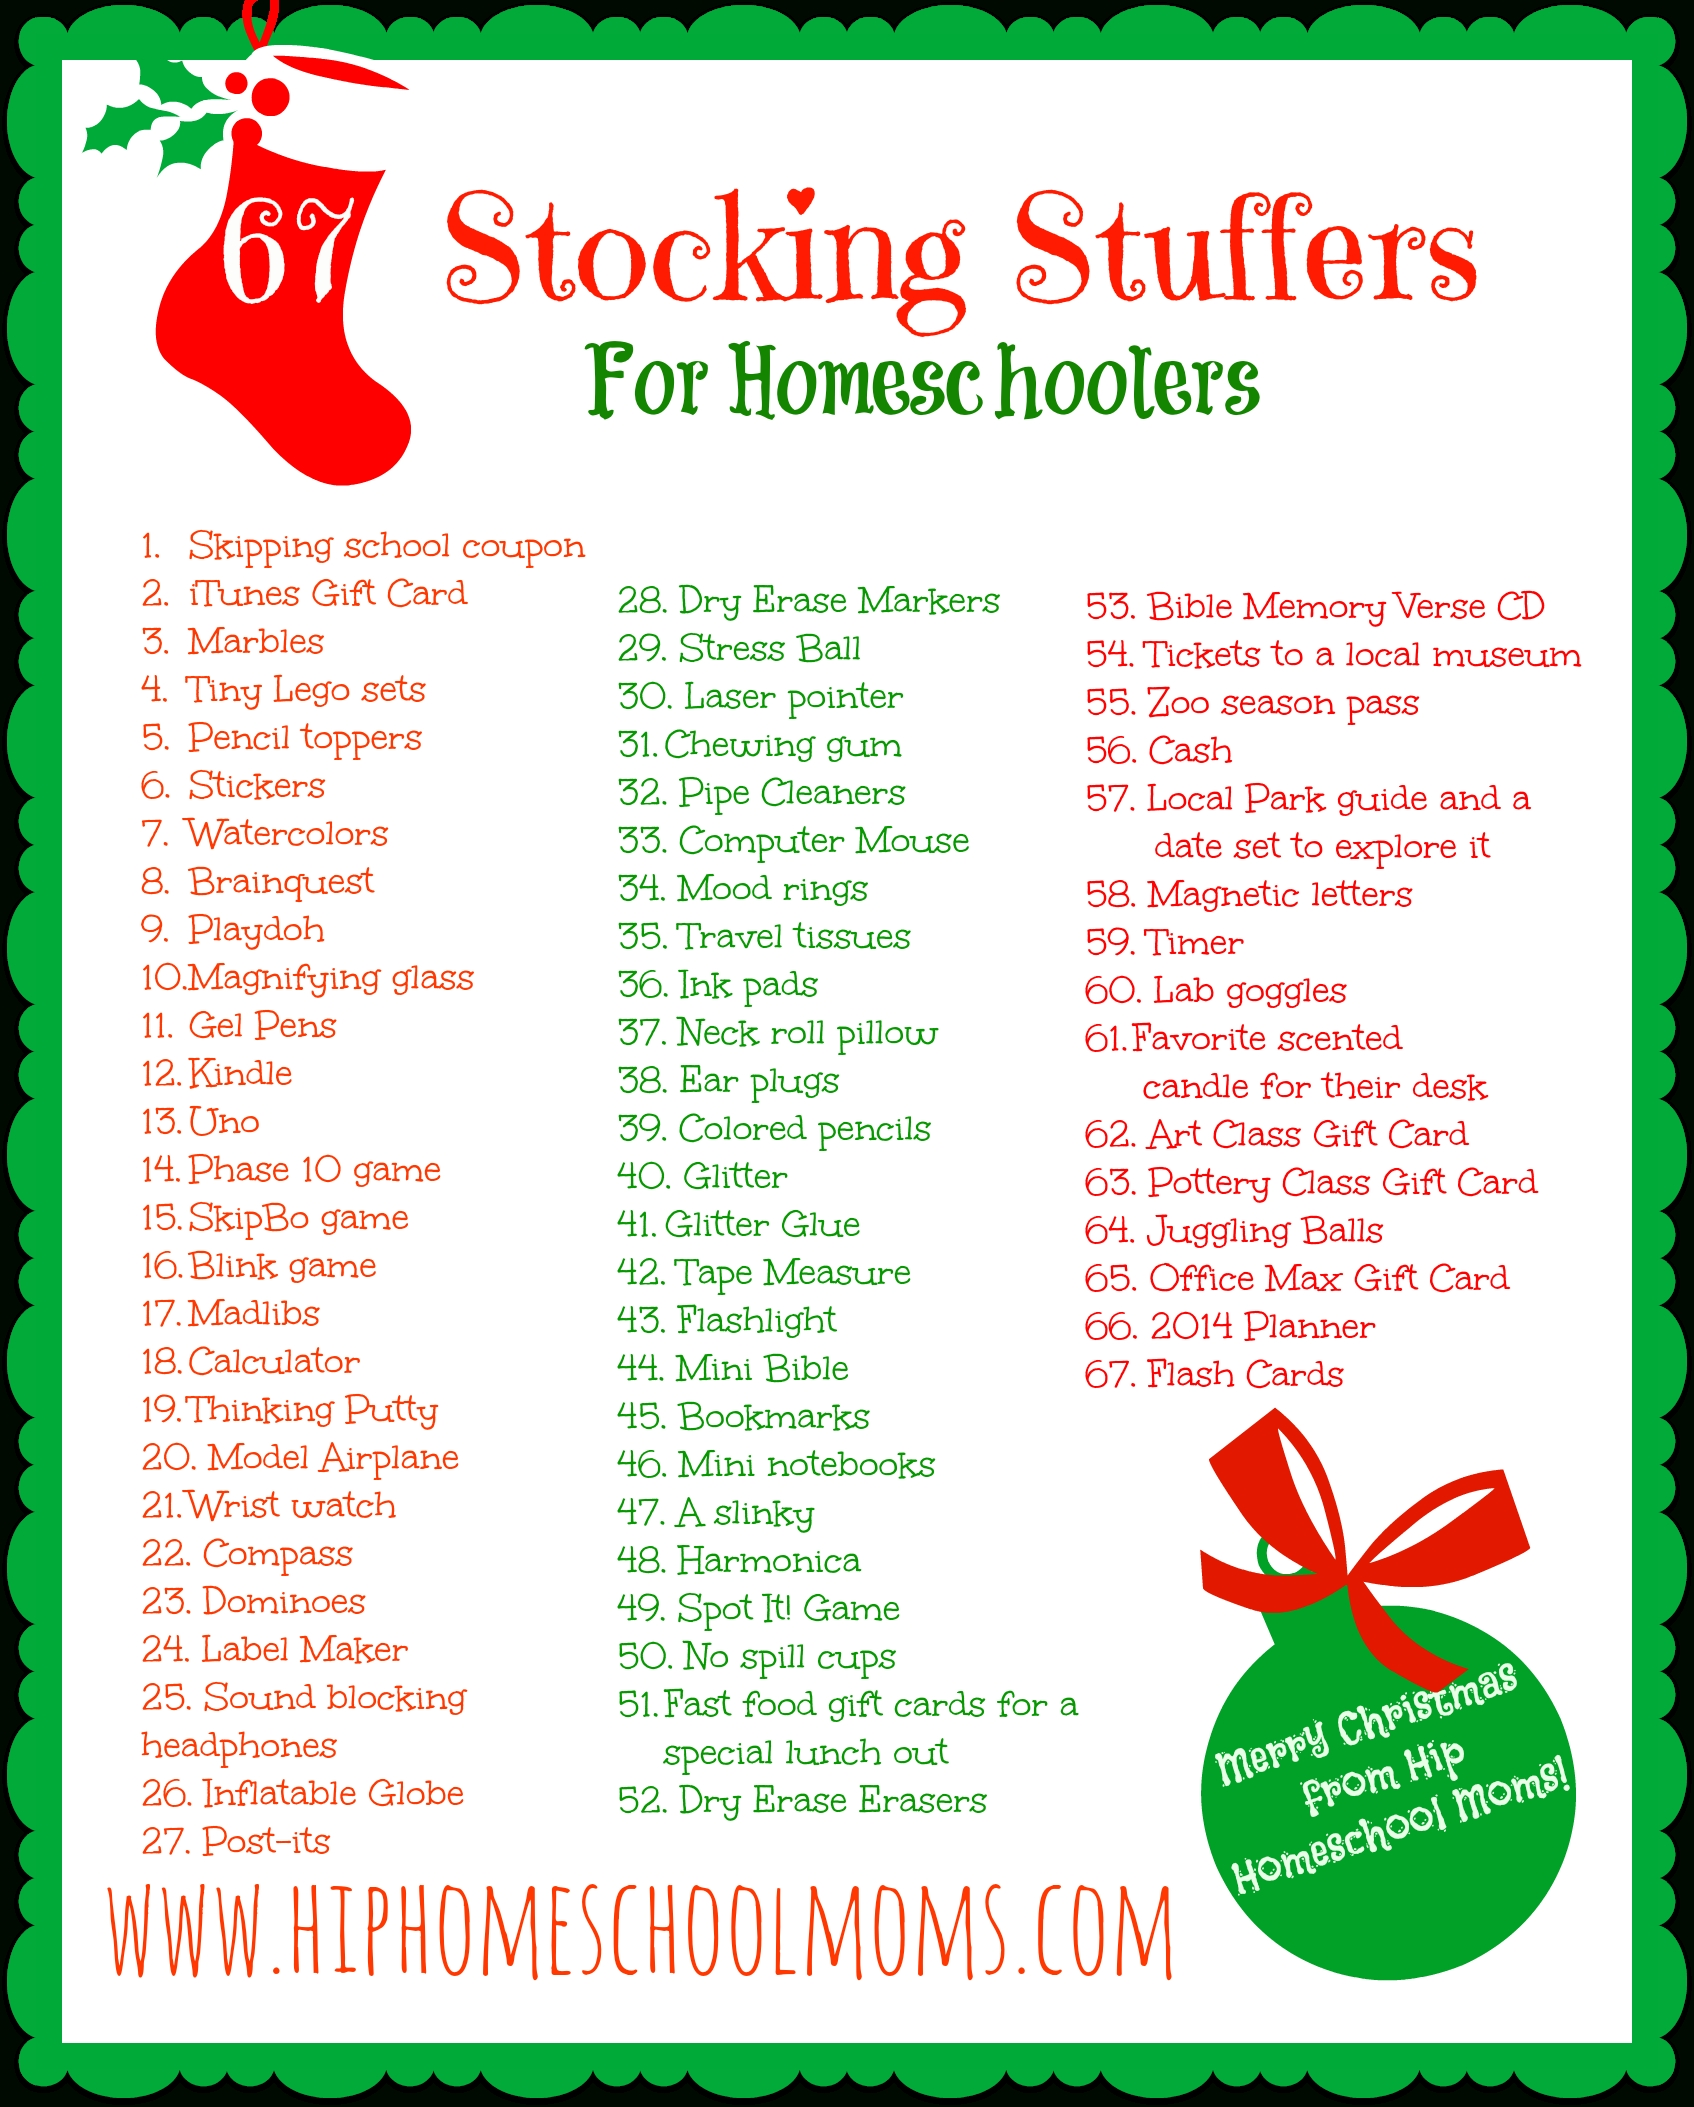 10 Amazing Stocking Stuffer Ideas For Wife printable homeschool stocking stuffer ideas hip homeschool moms 4